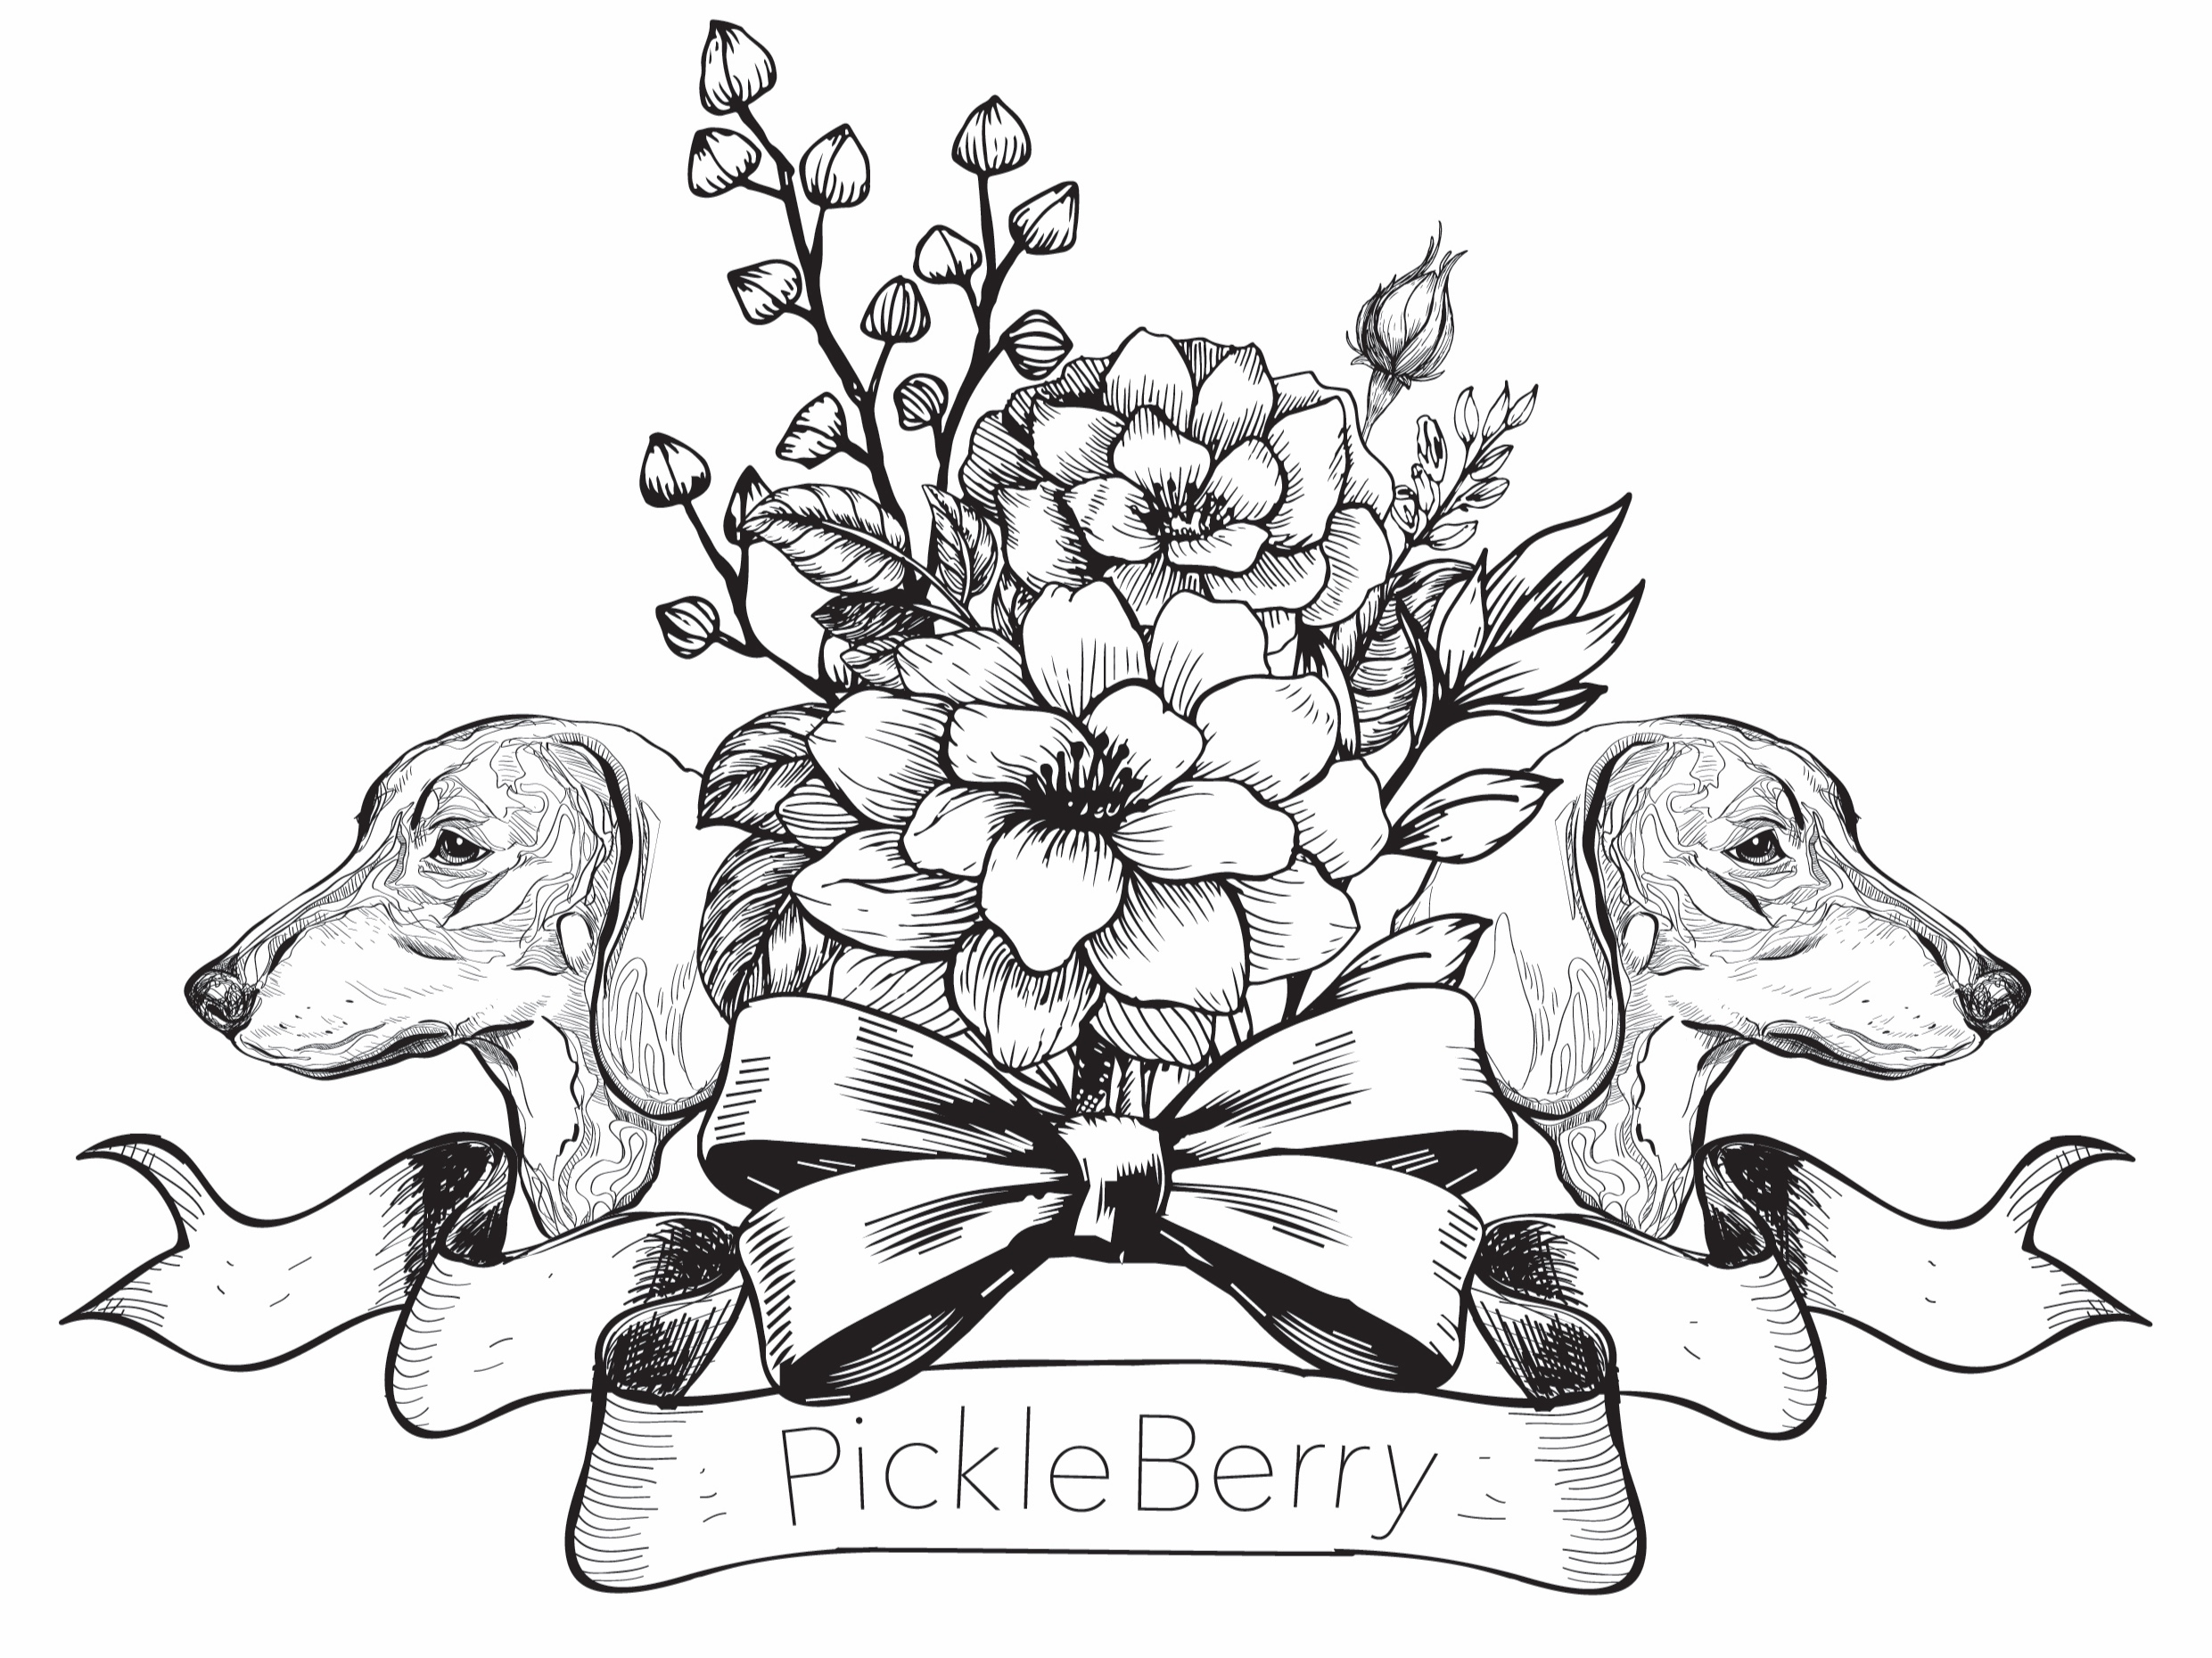 PickleBerry Florist - Product and Media images.